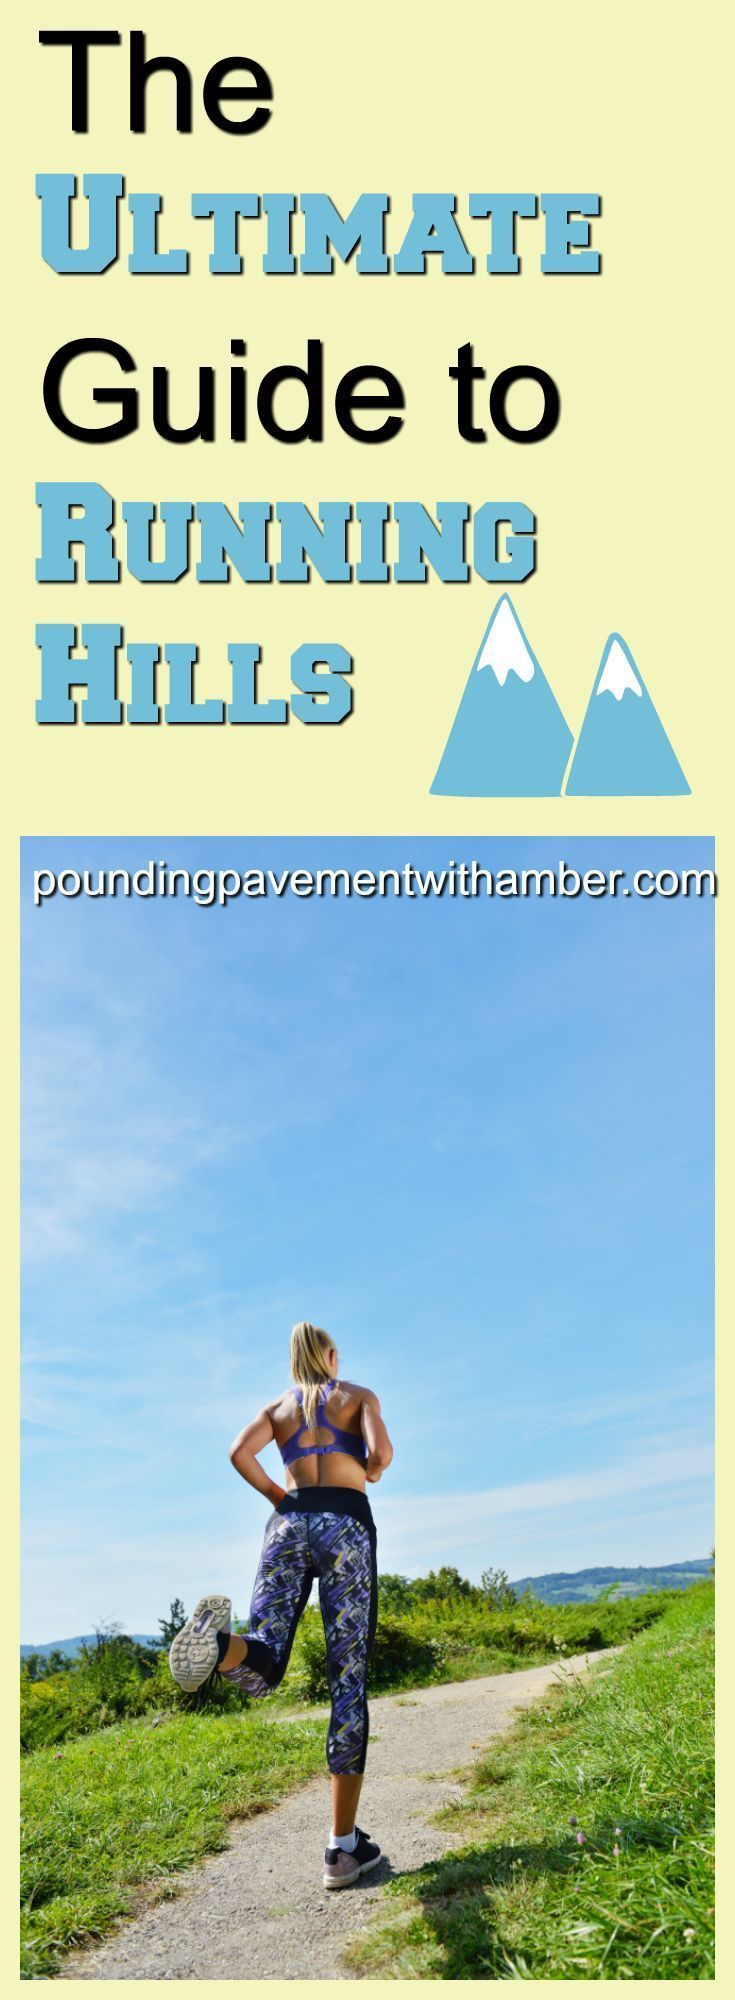 Here is your ultimate guide to make running hills part of your training program for your next half or full marathon!